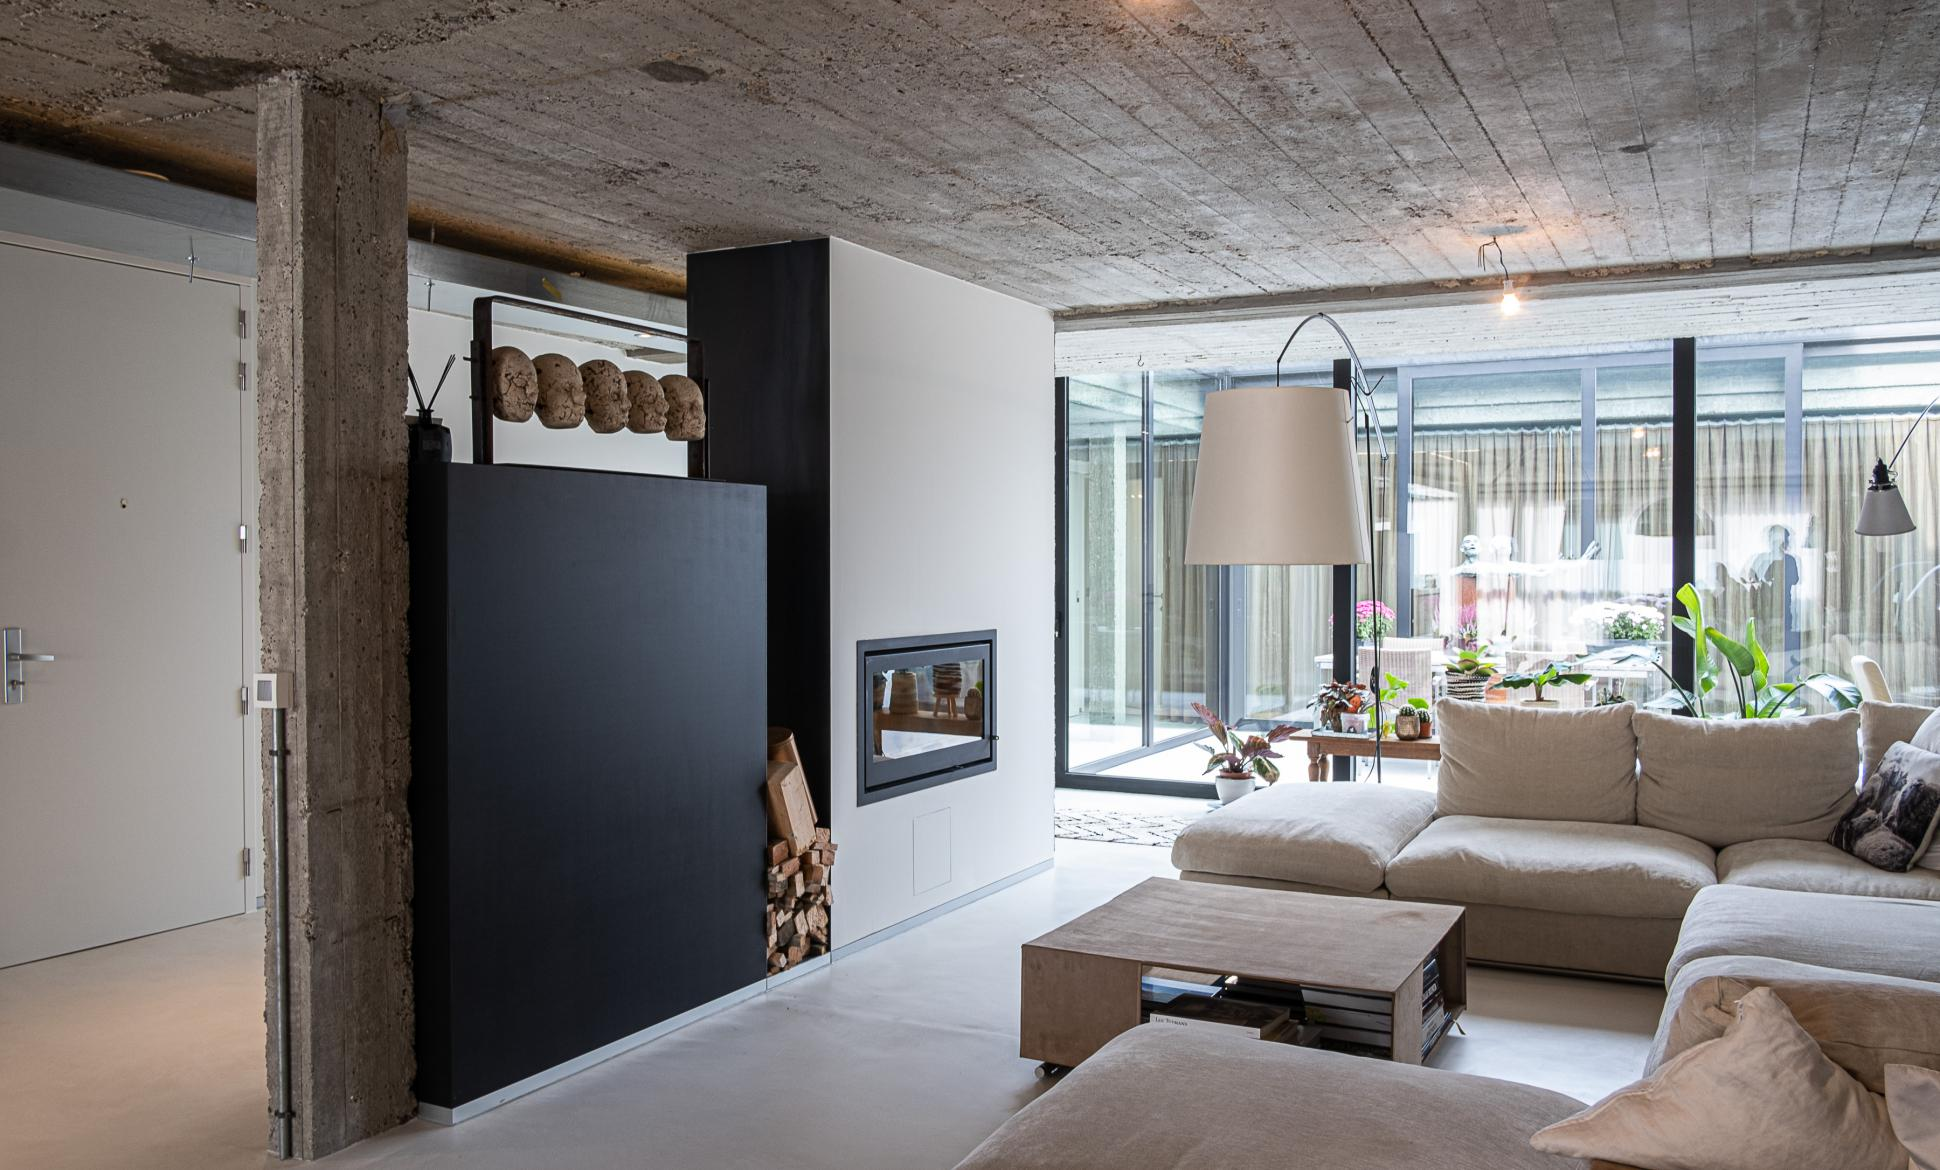 Woonkamer The Loft 2.0